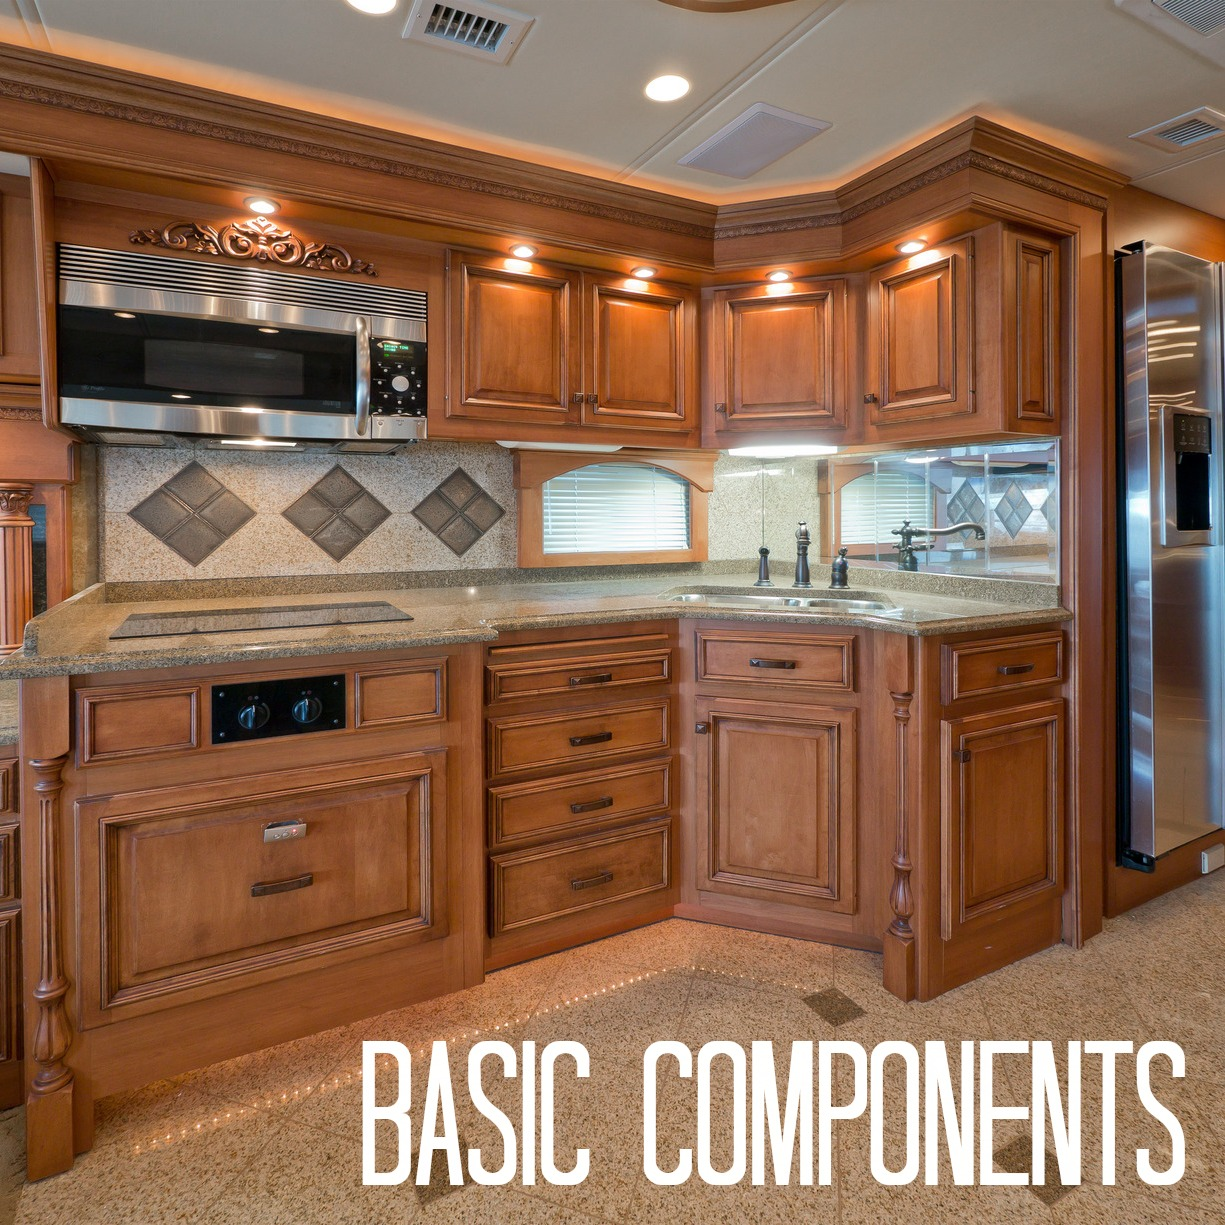 Mobile Home Supply for Construction and Repair | Basic ...